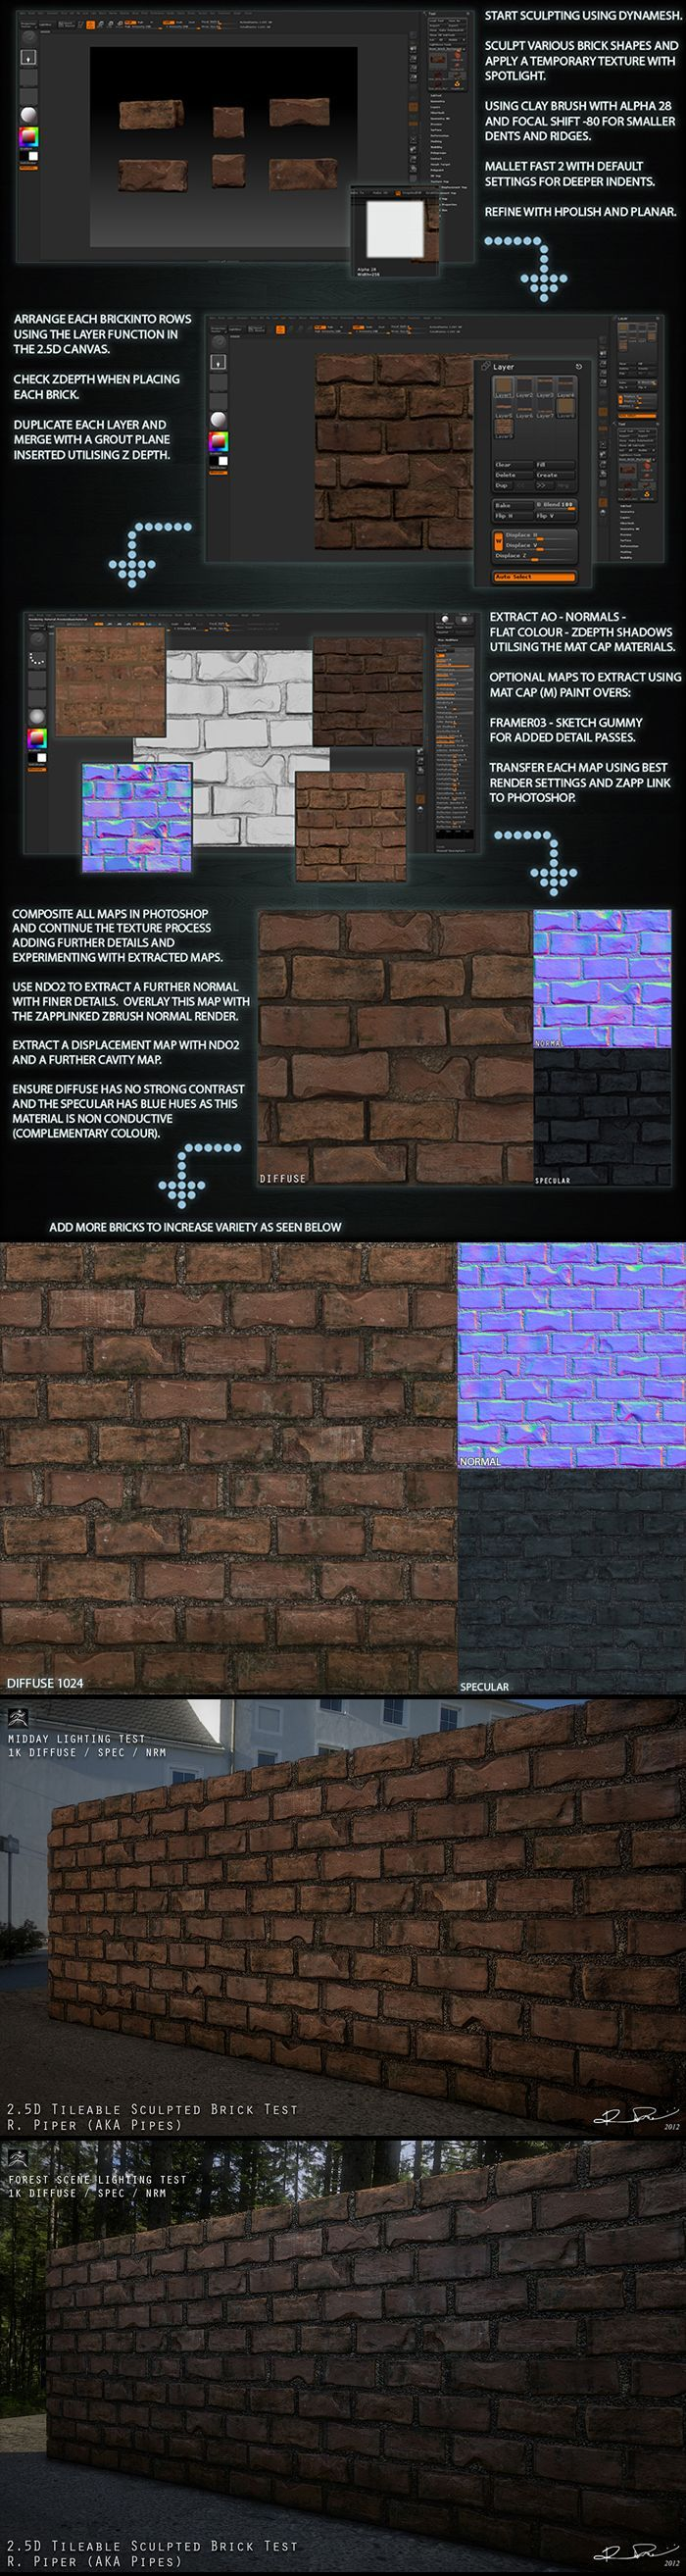 tileable texture by richard piper: